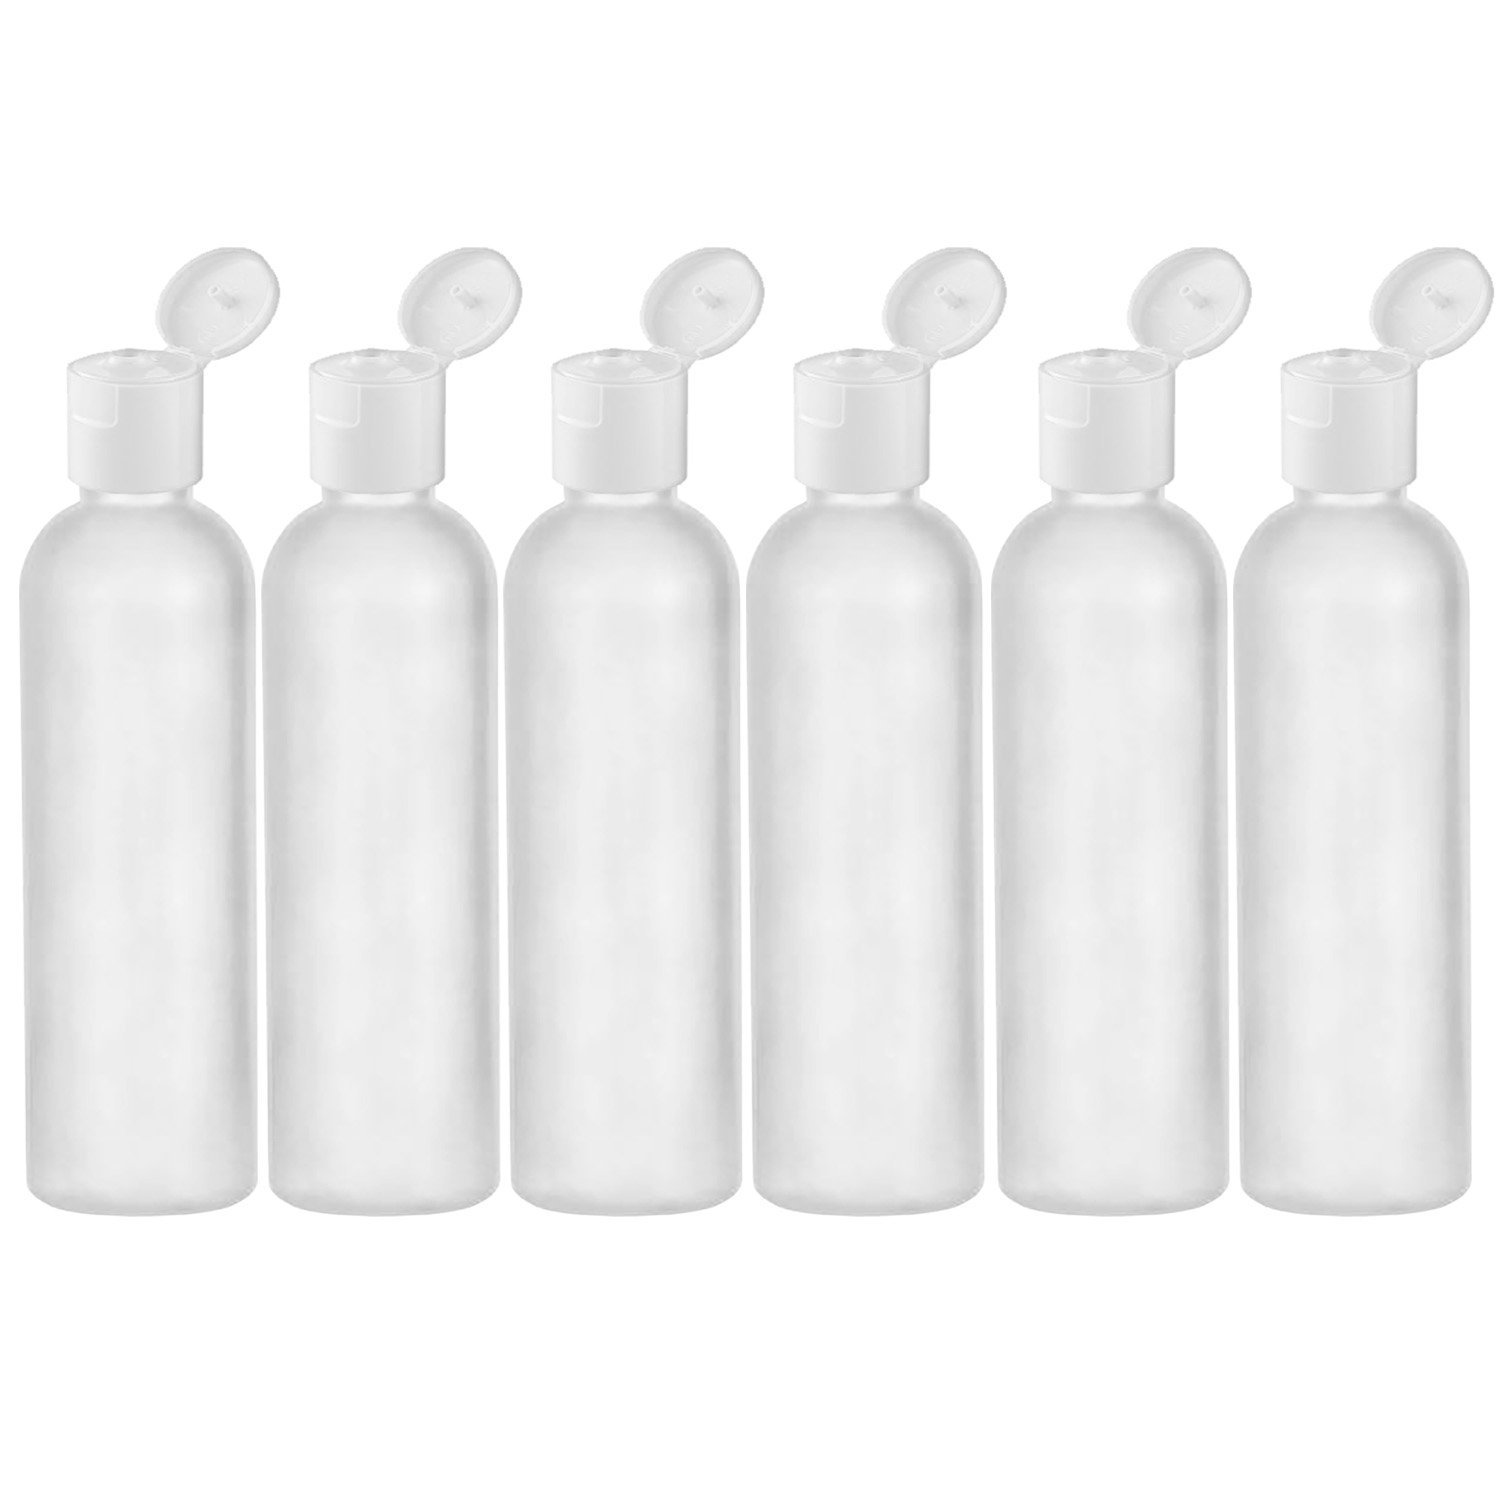 MoYo Natural Labs 4 oz Travel Bottles, Empty Travel Containers with Flip Caps, BPA Free HDPE Plastic Squeezable Toiletry/Cosmetic Bottles (Neck 20-410) (6 pack, Translucent White)